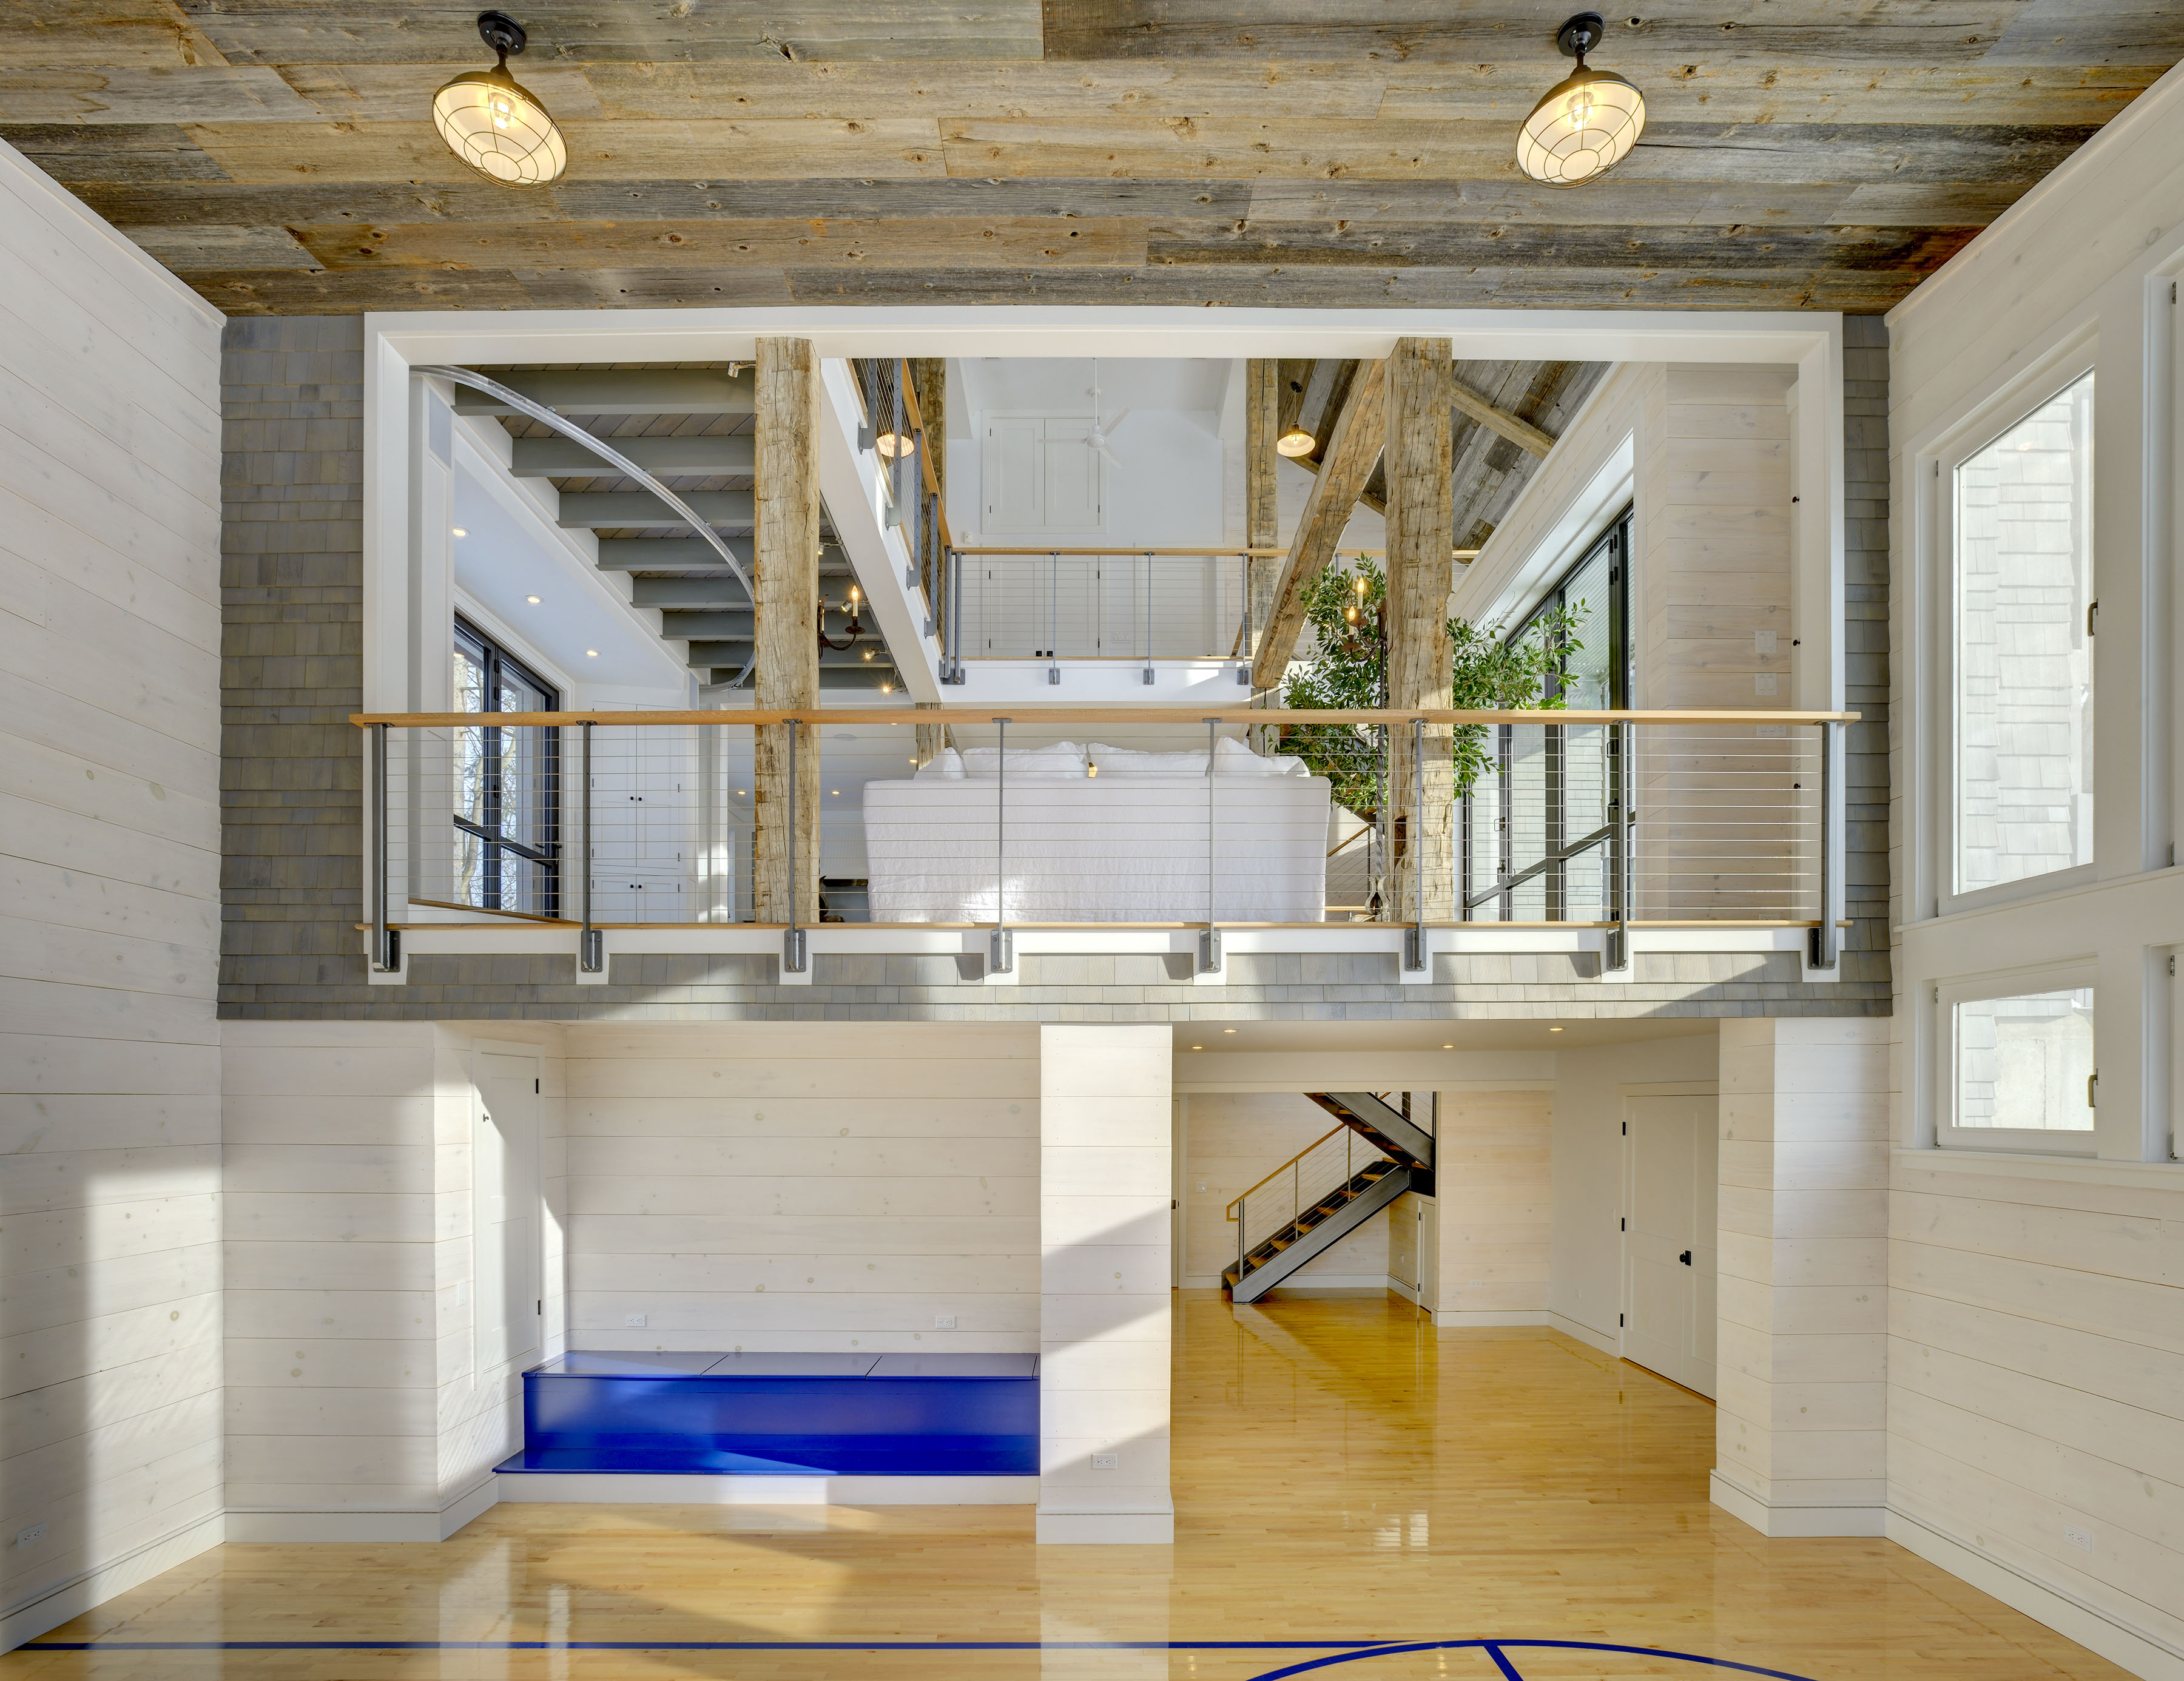 Indoor basketball court and reclaimed wood ceilings with keuka cable railing overlook